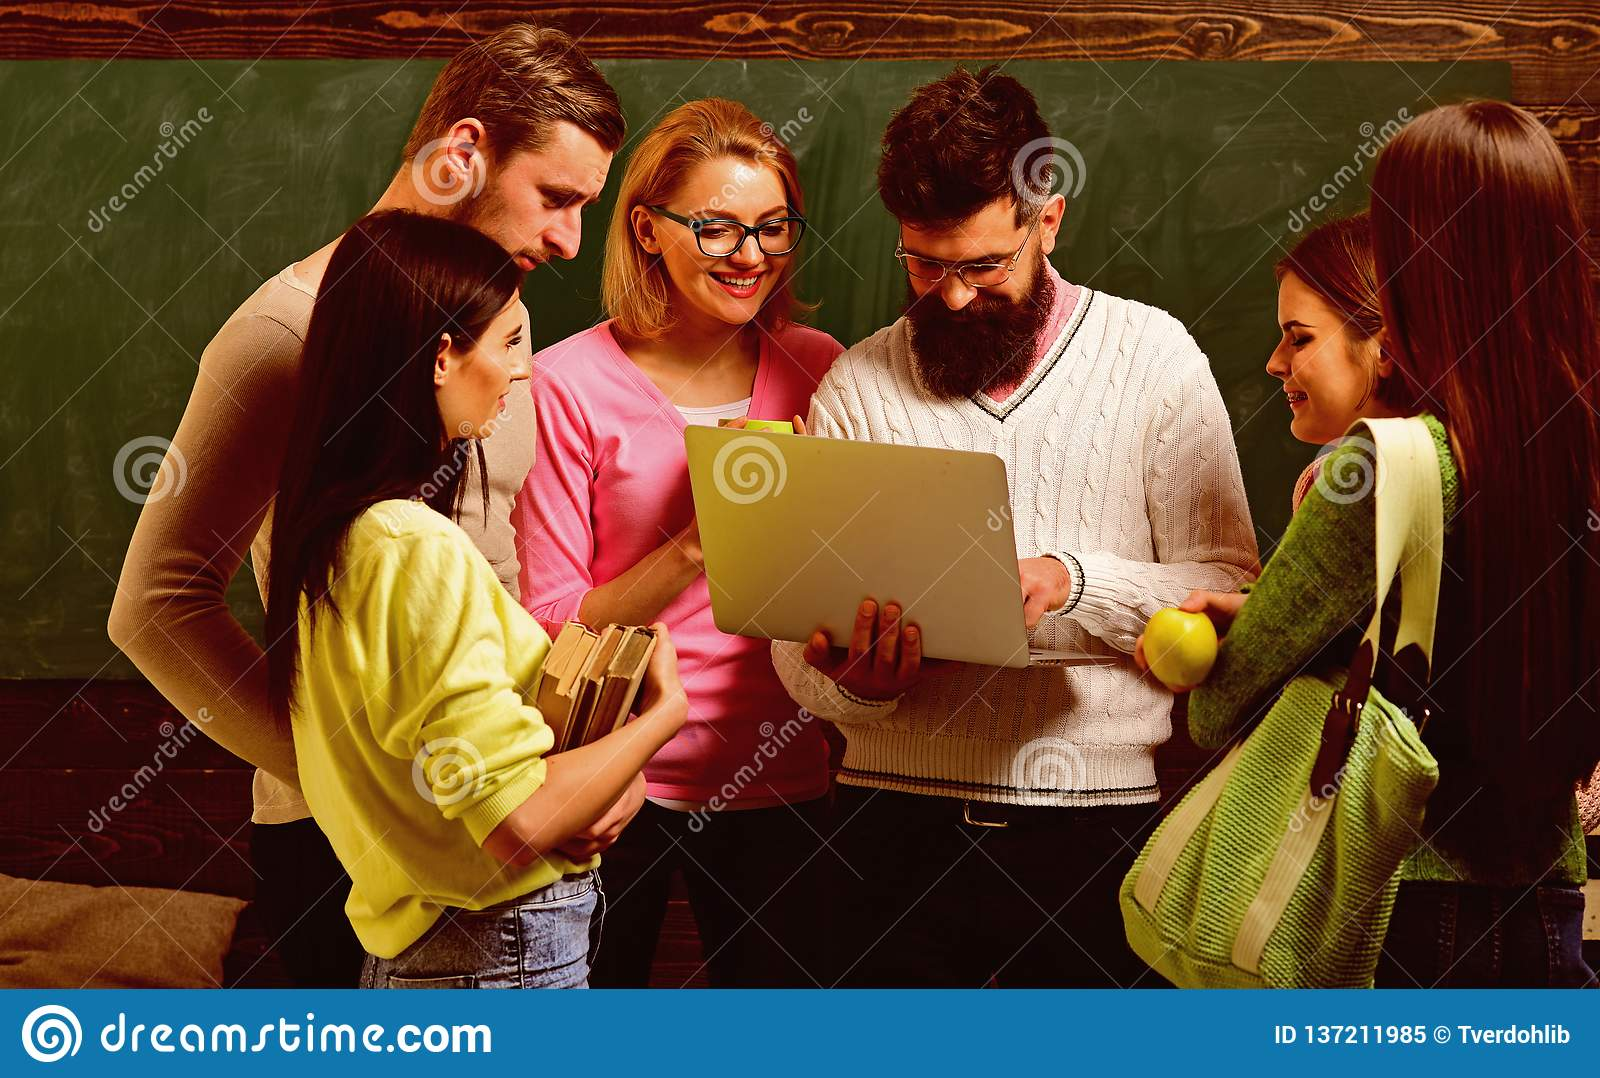 College and university concept. Group of students, groupmates spend time with teacher, lecturer, professor. Students